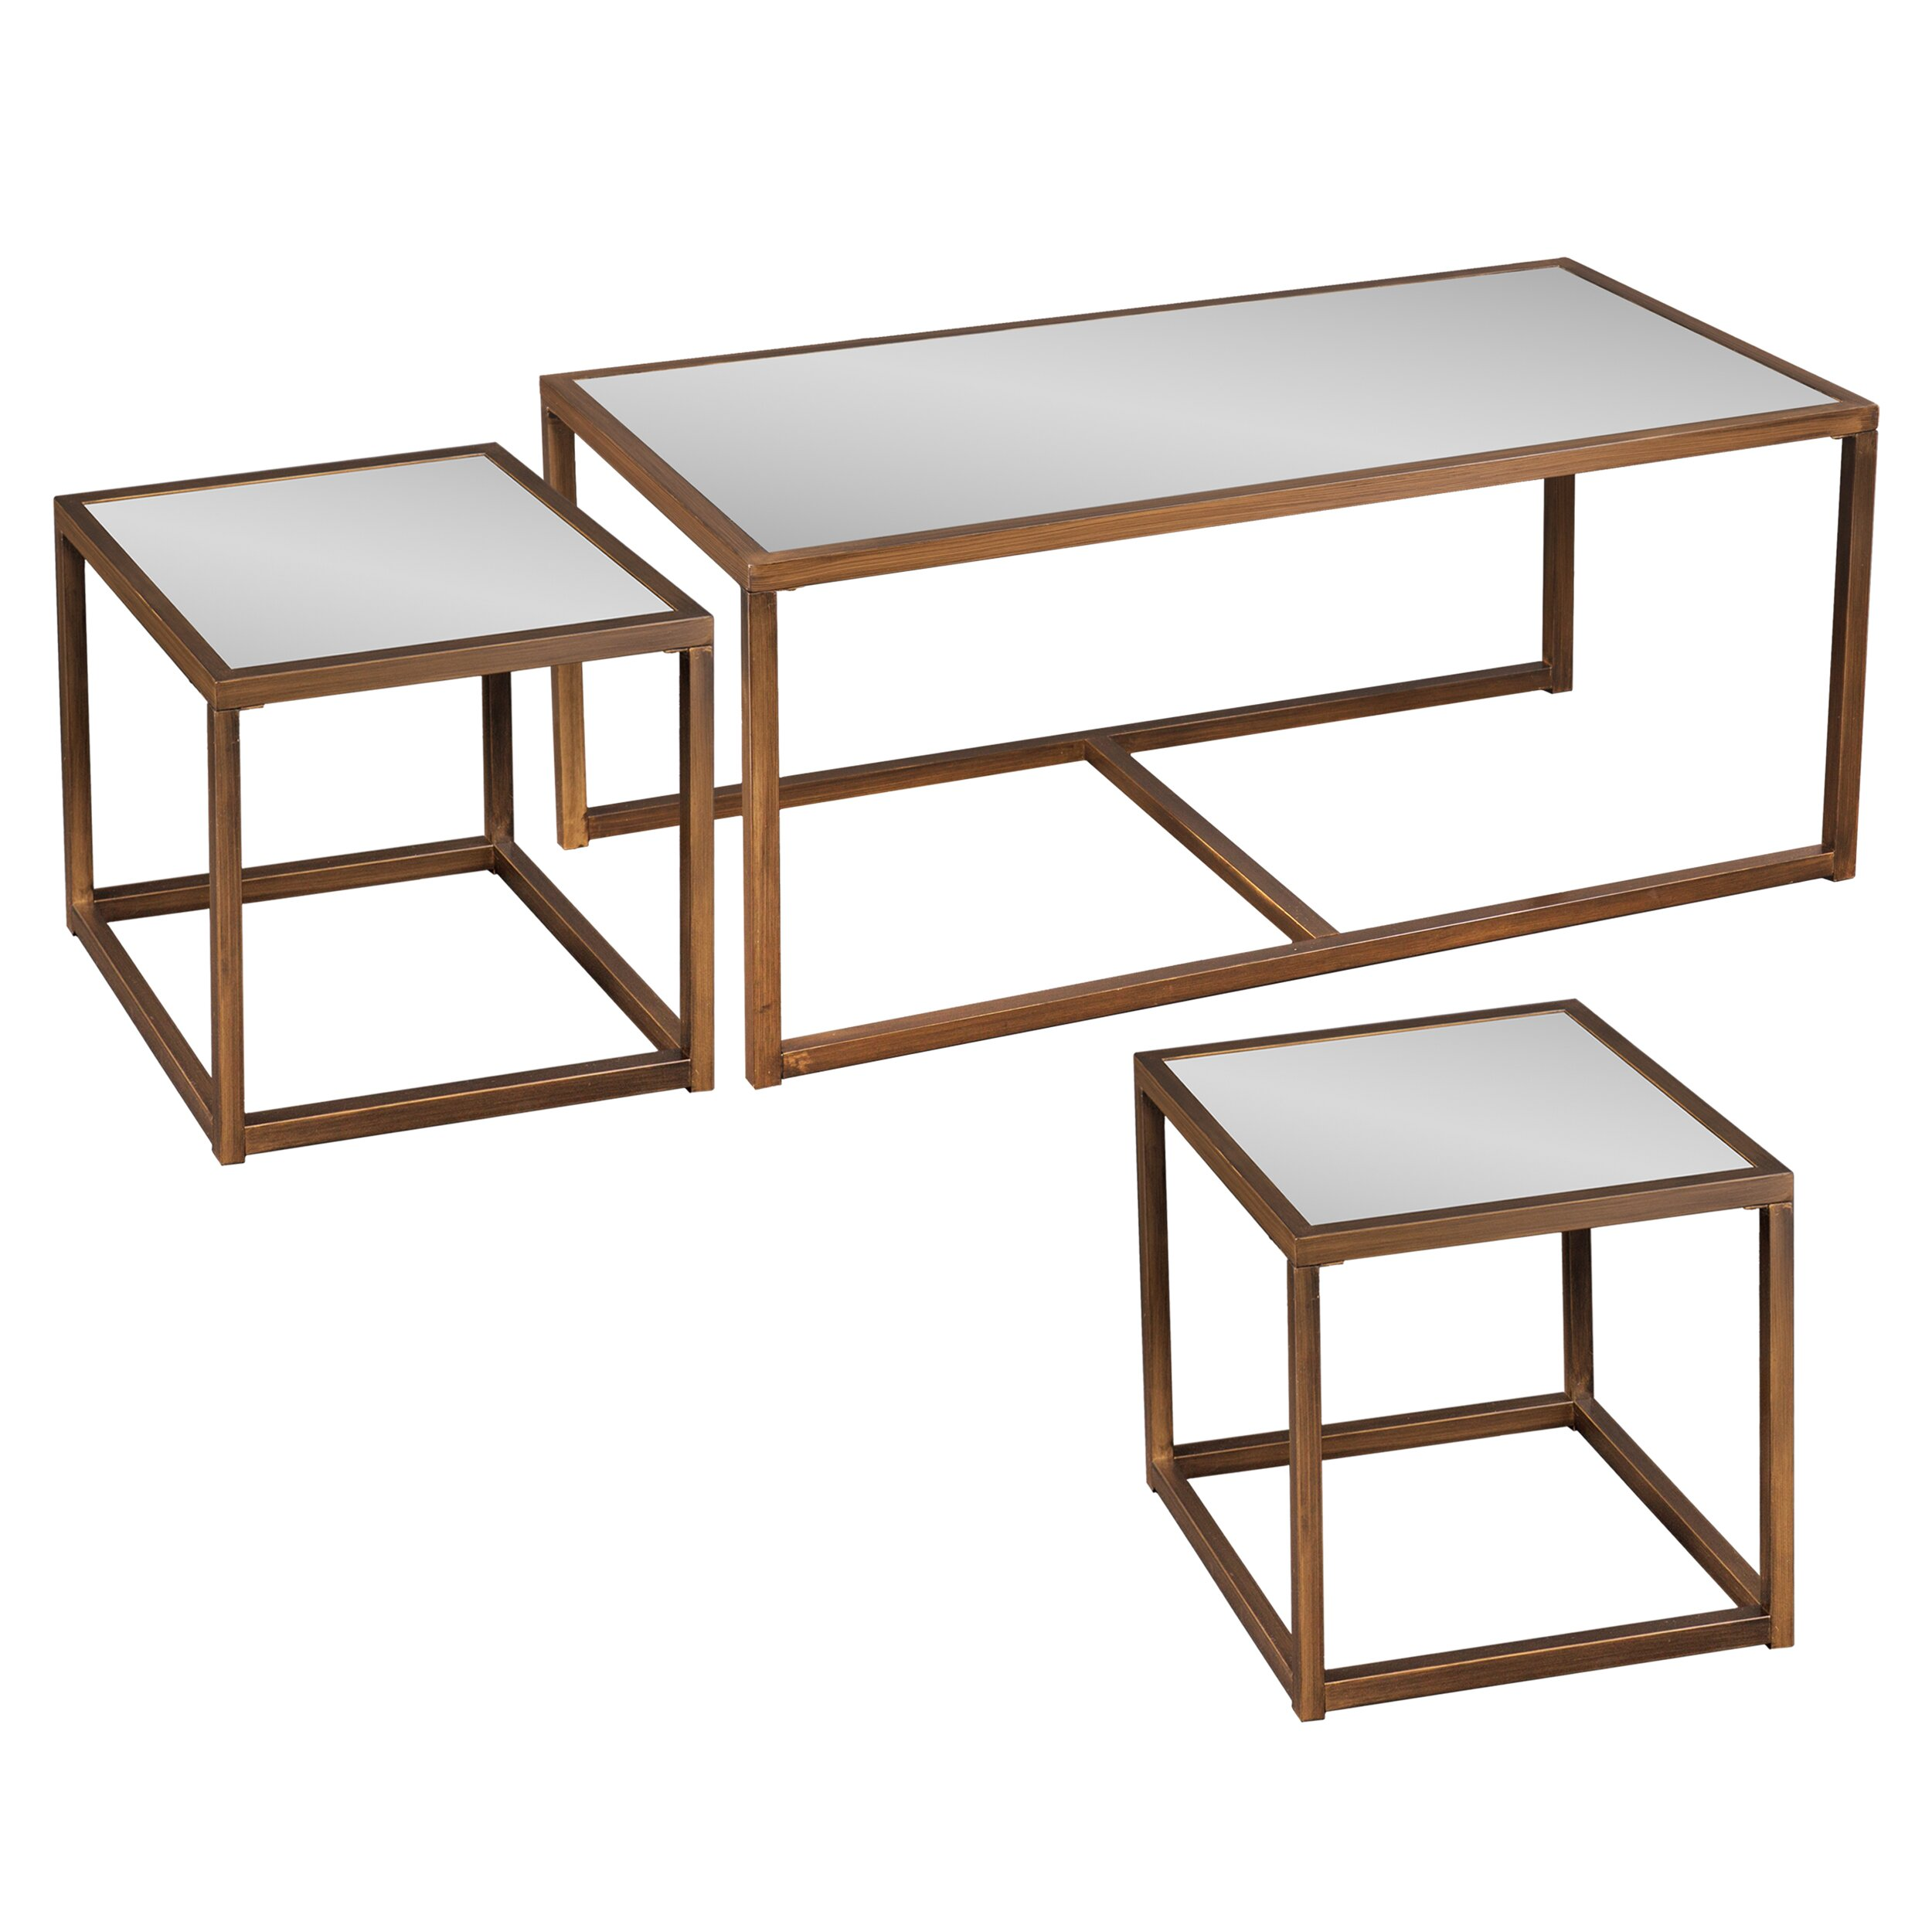 Hardy 3 Piece Nesting Coffee Table Set HOHN2492 HOHN2492